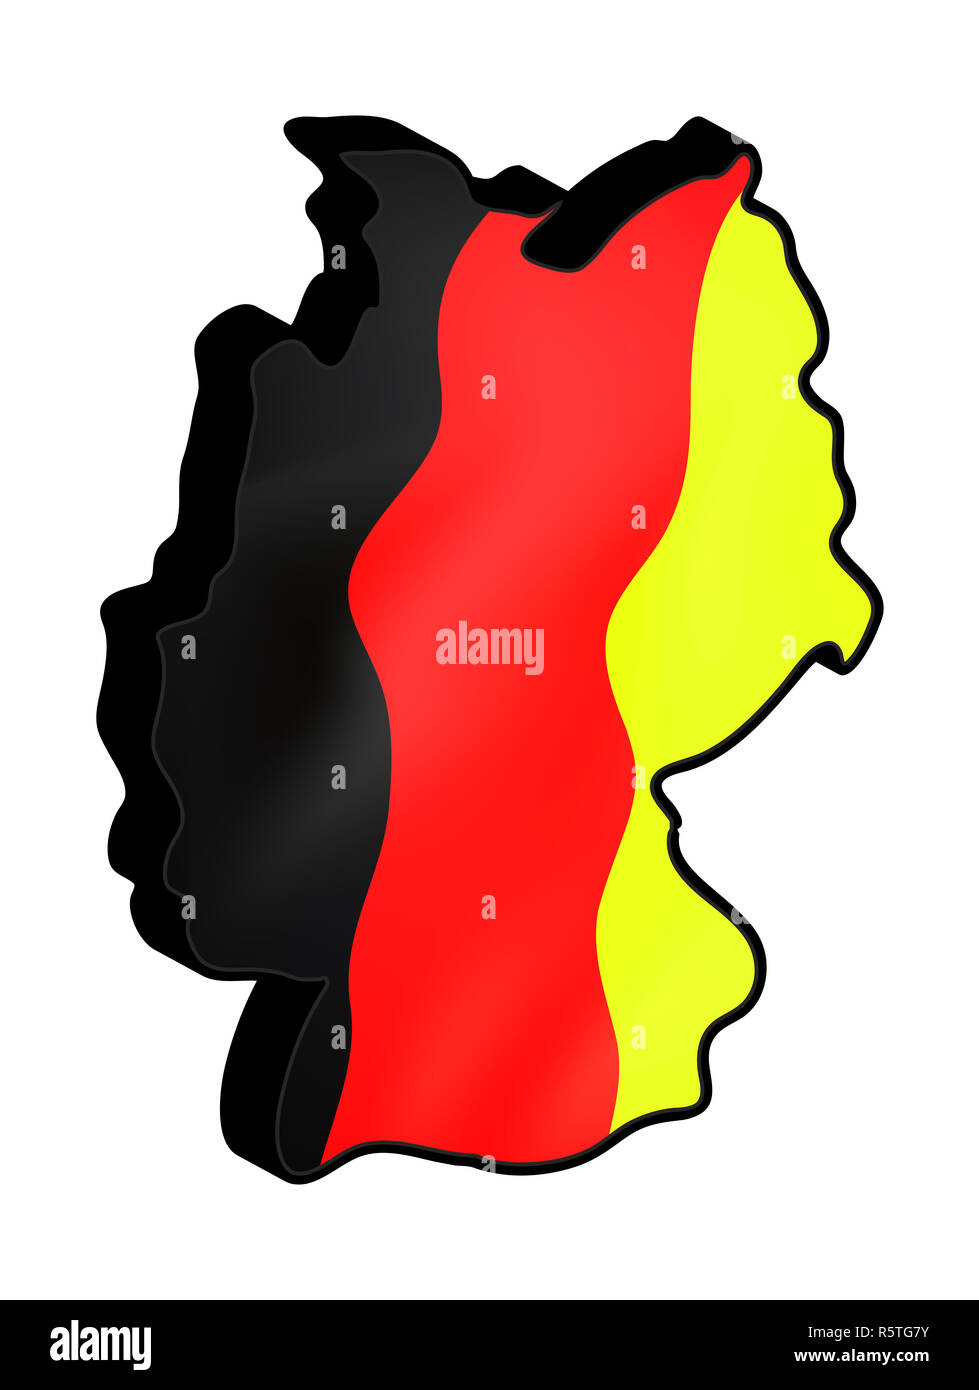 Germany map vector symbol icon  design. german flag colors illustration isolated on white background. - Stock Image